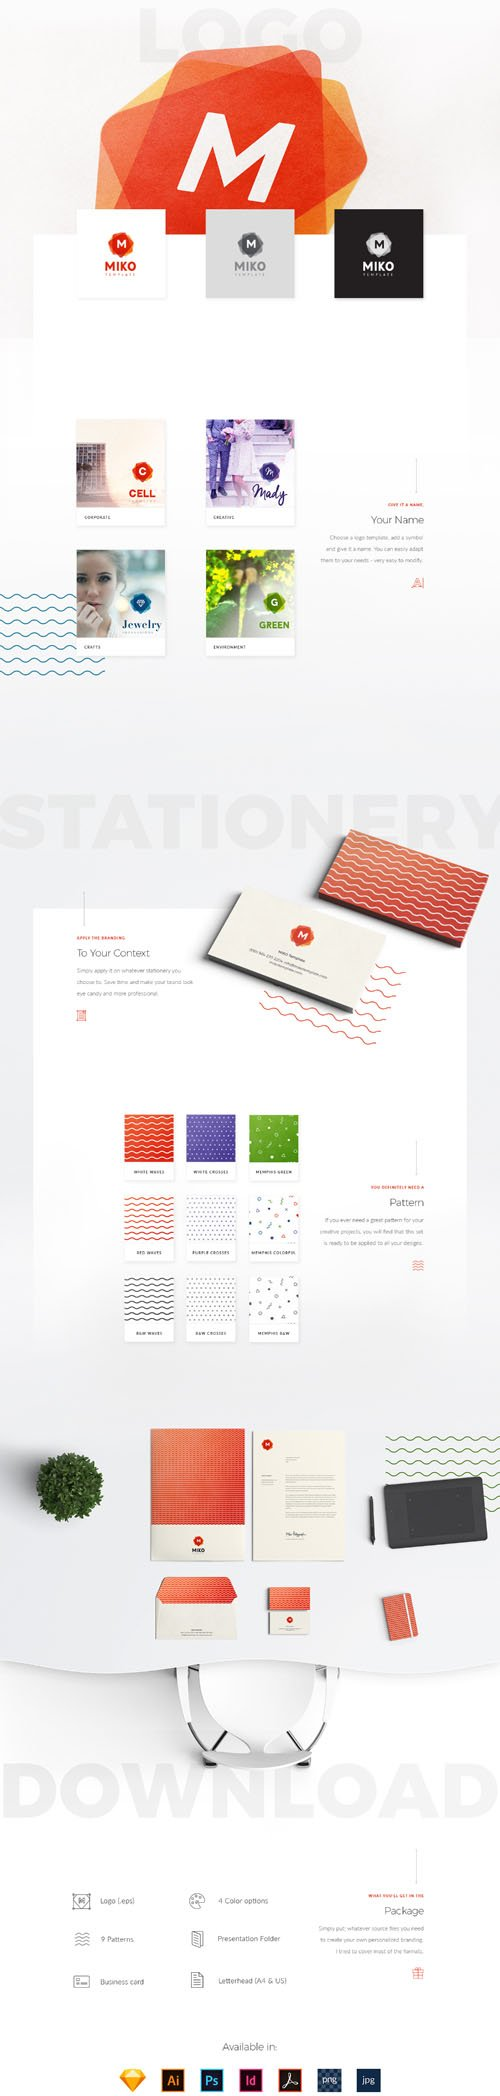 MIKO Logo Pattern Stationery Templates [AI/EPS/PSD/INDD/Sketch]